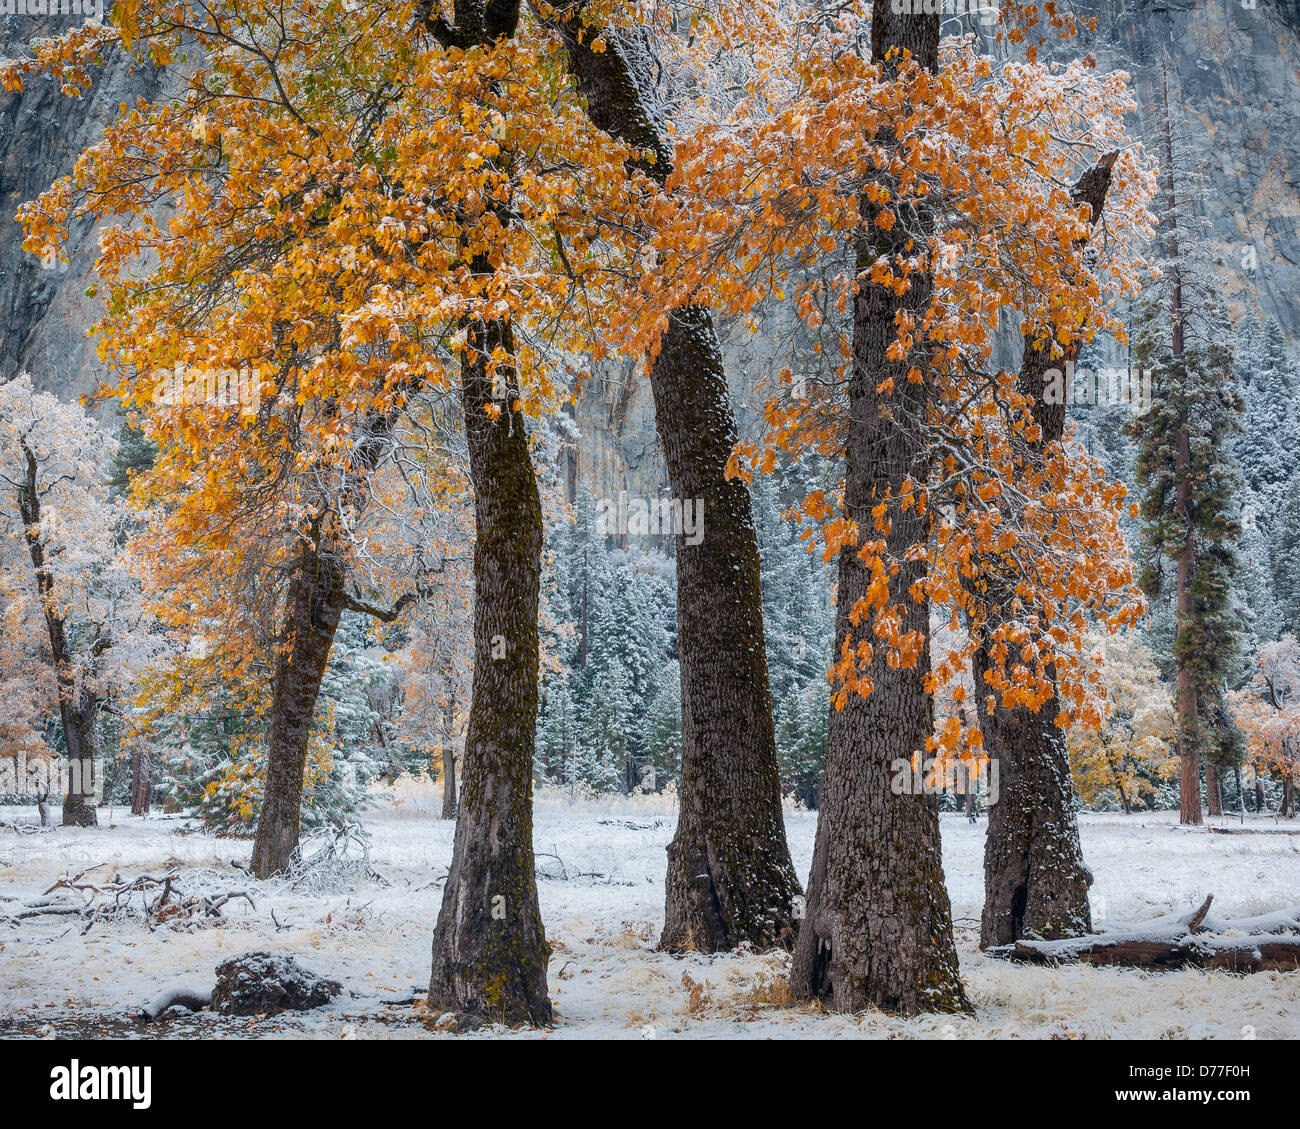 Yosemite National Park, CA: Three black oaks with lingering fall color and a dusting of snow, Yosemite Valley - Stock Image